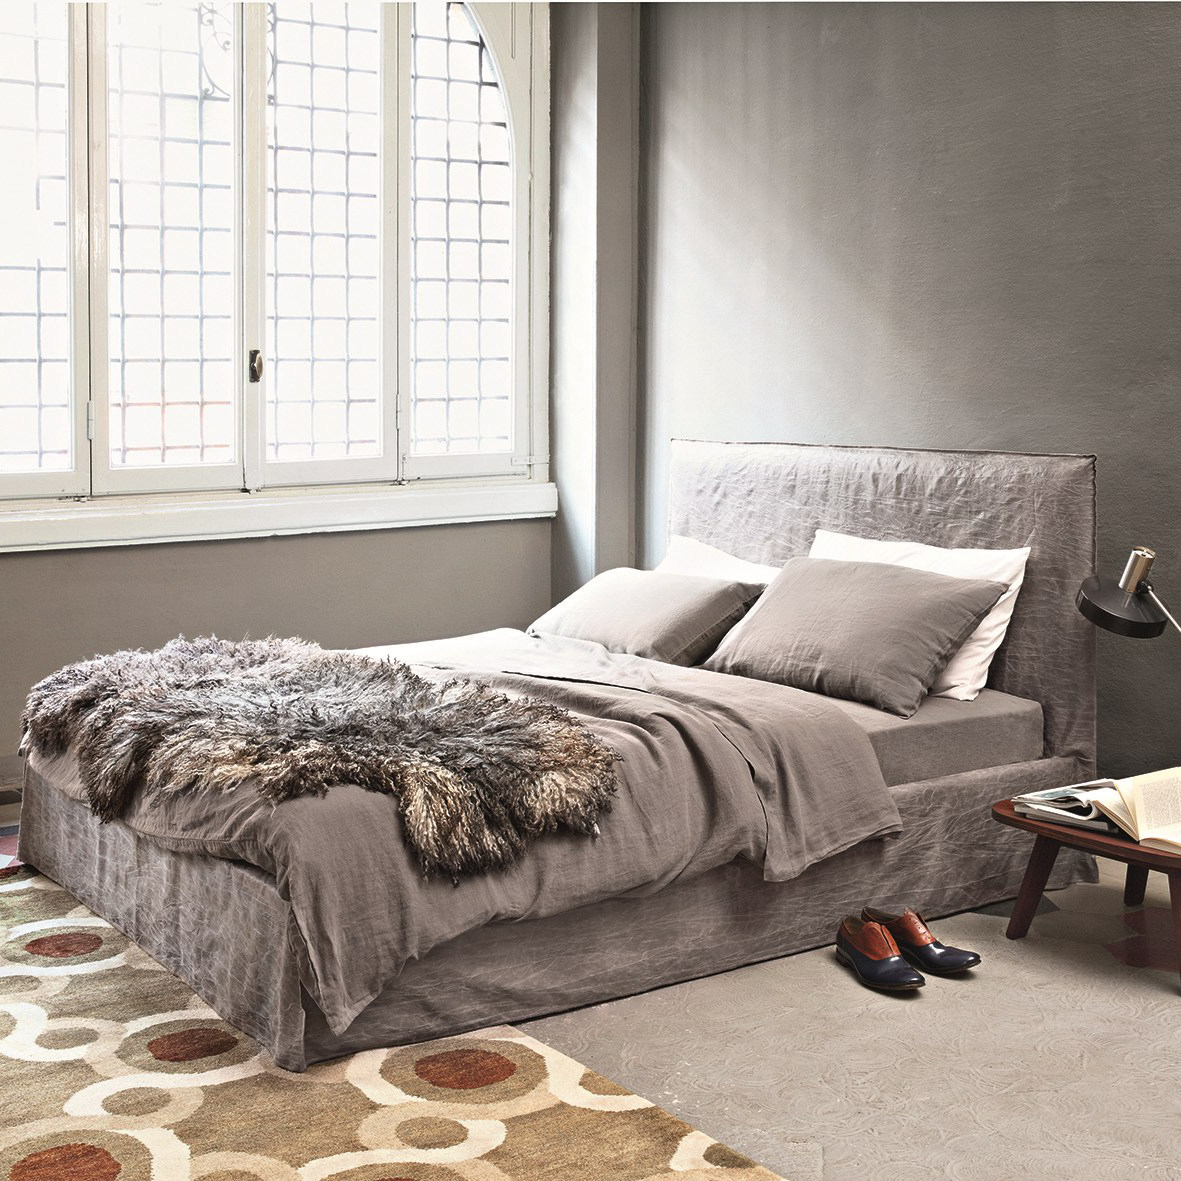 gervasoni GHOST 80E BED - Knock-down bed, multilayer and solid wood frame, adjustable slat supports, upholstered with polyurethane foams, removable cover.